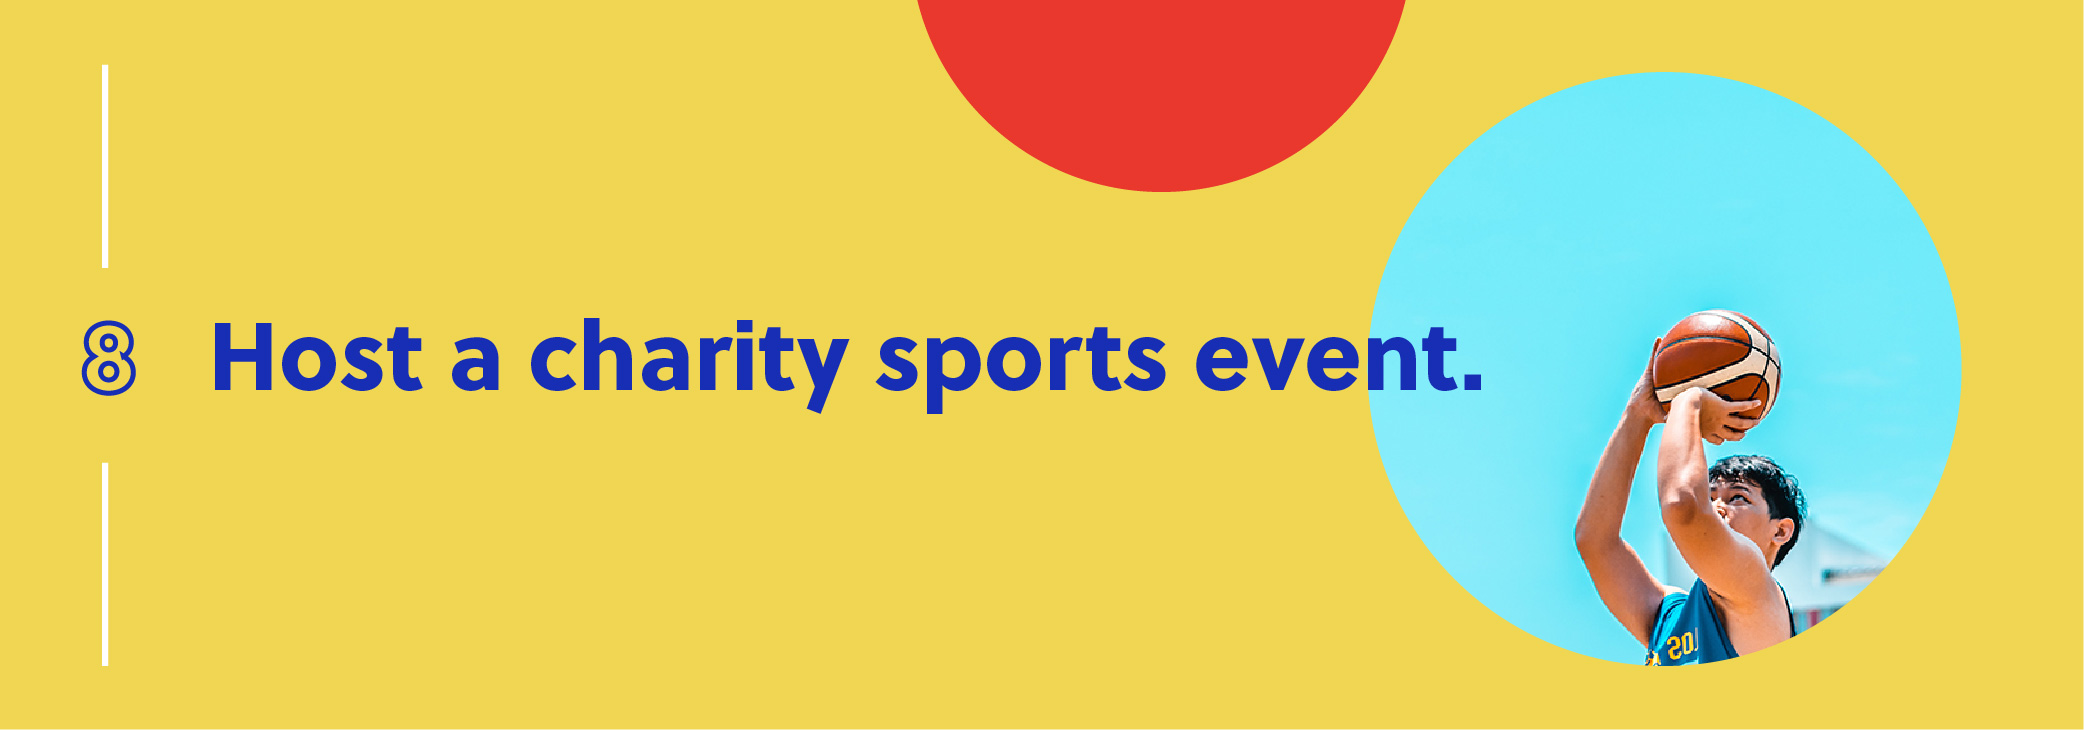 Host a charity sports event.